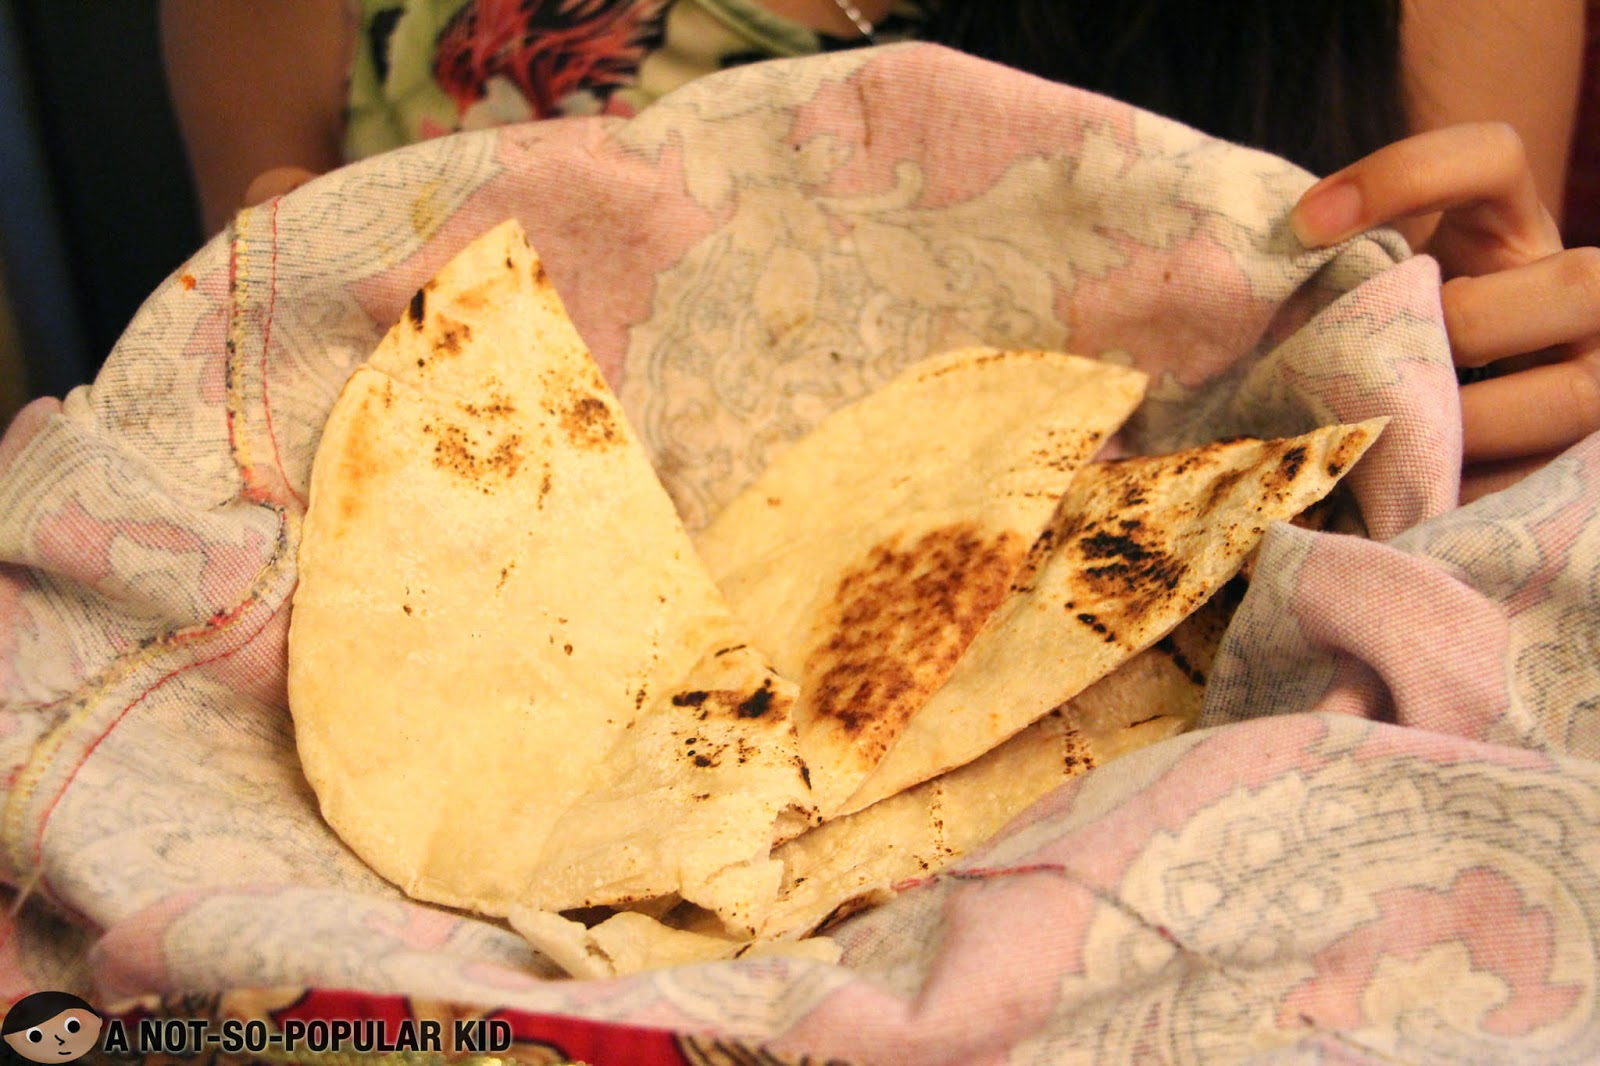 The pita bread that comes along with the Arya Dip Platter